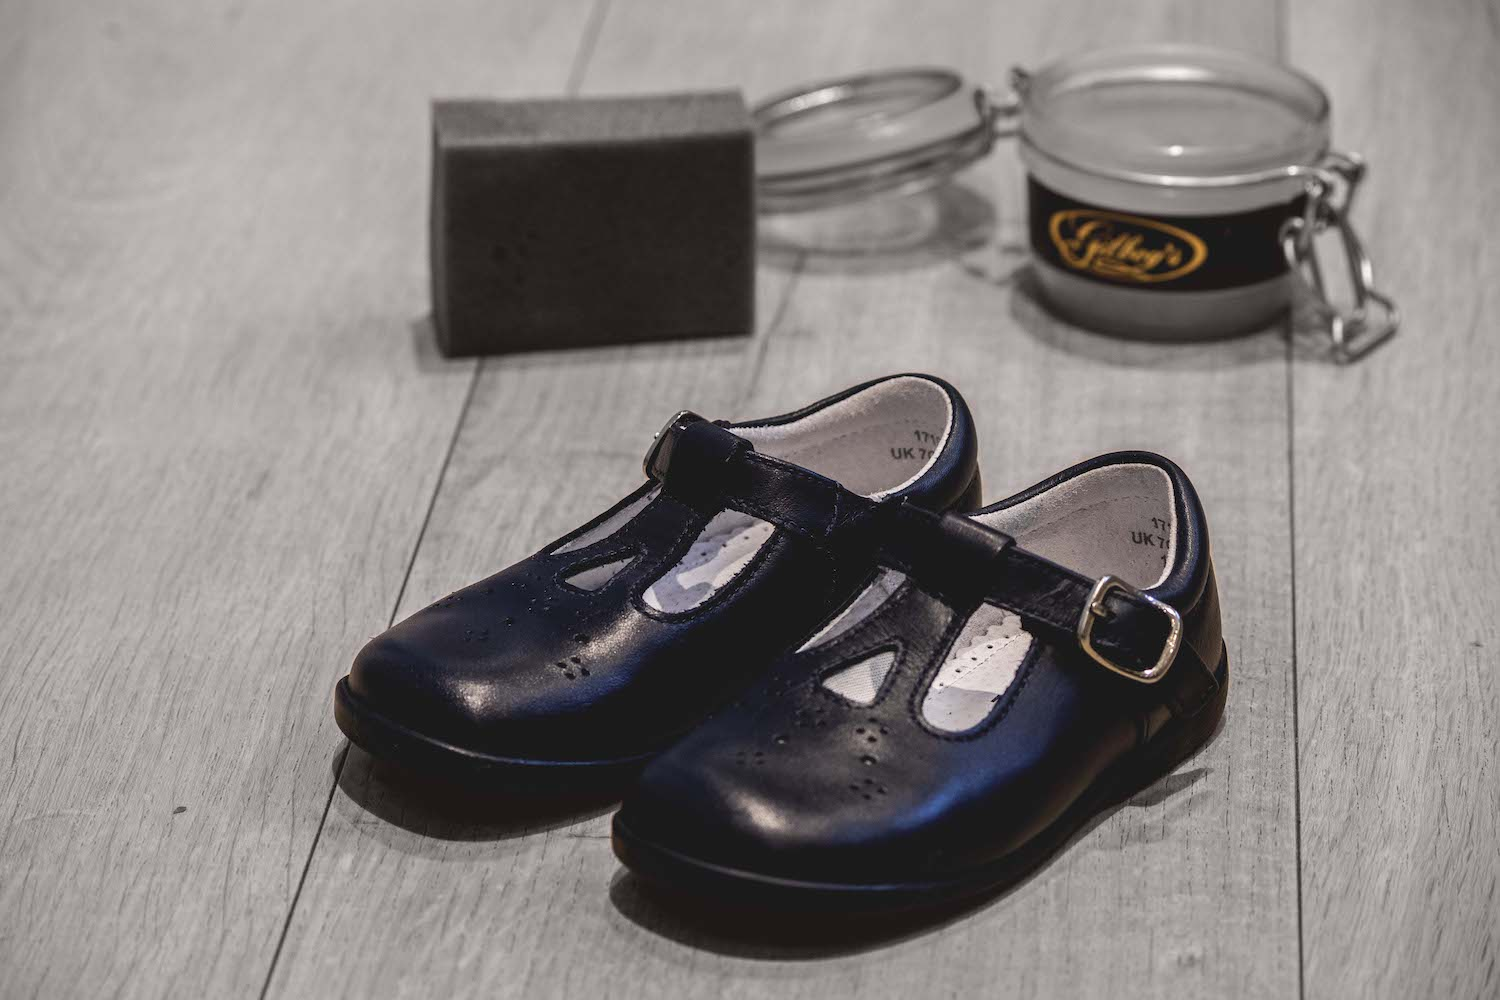 leather schools shoes polished with Gilboys leather Balsam